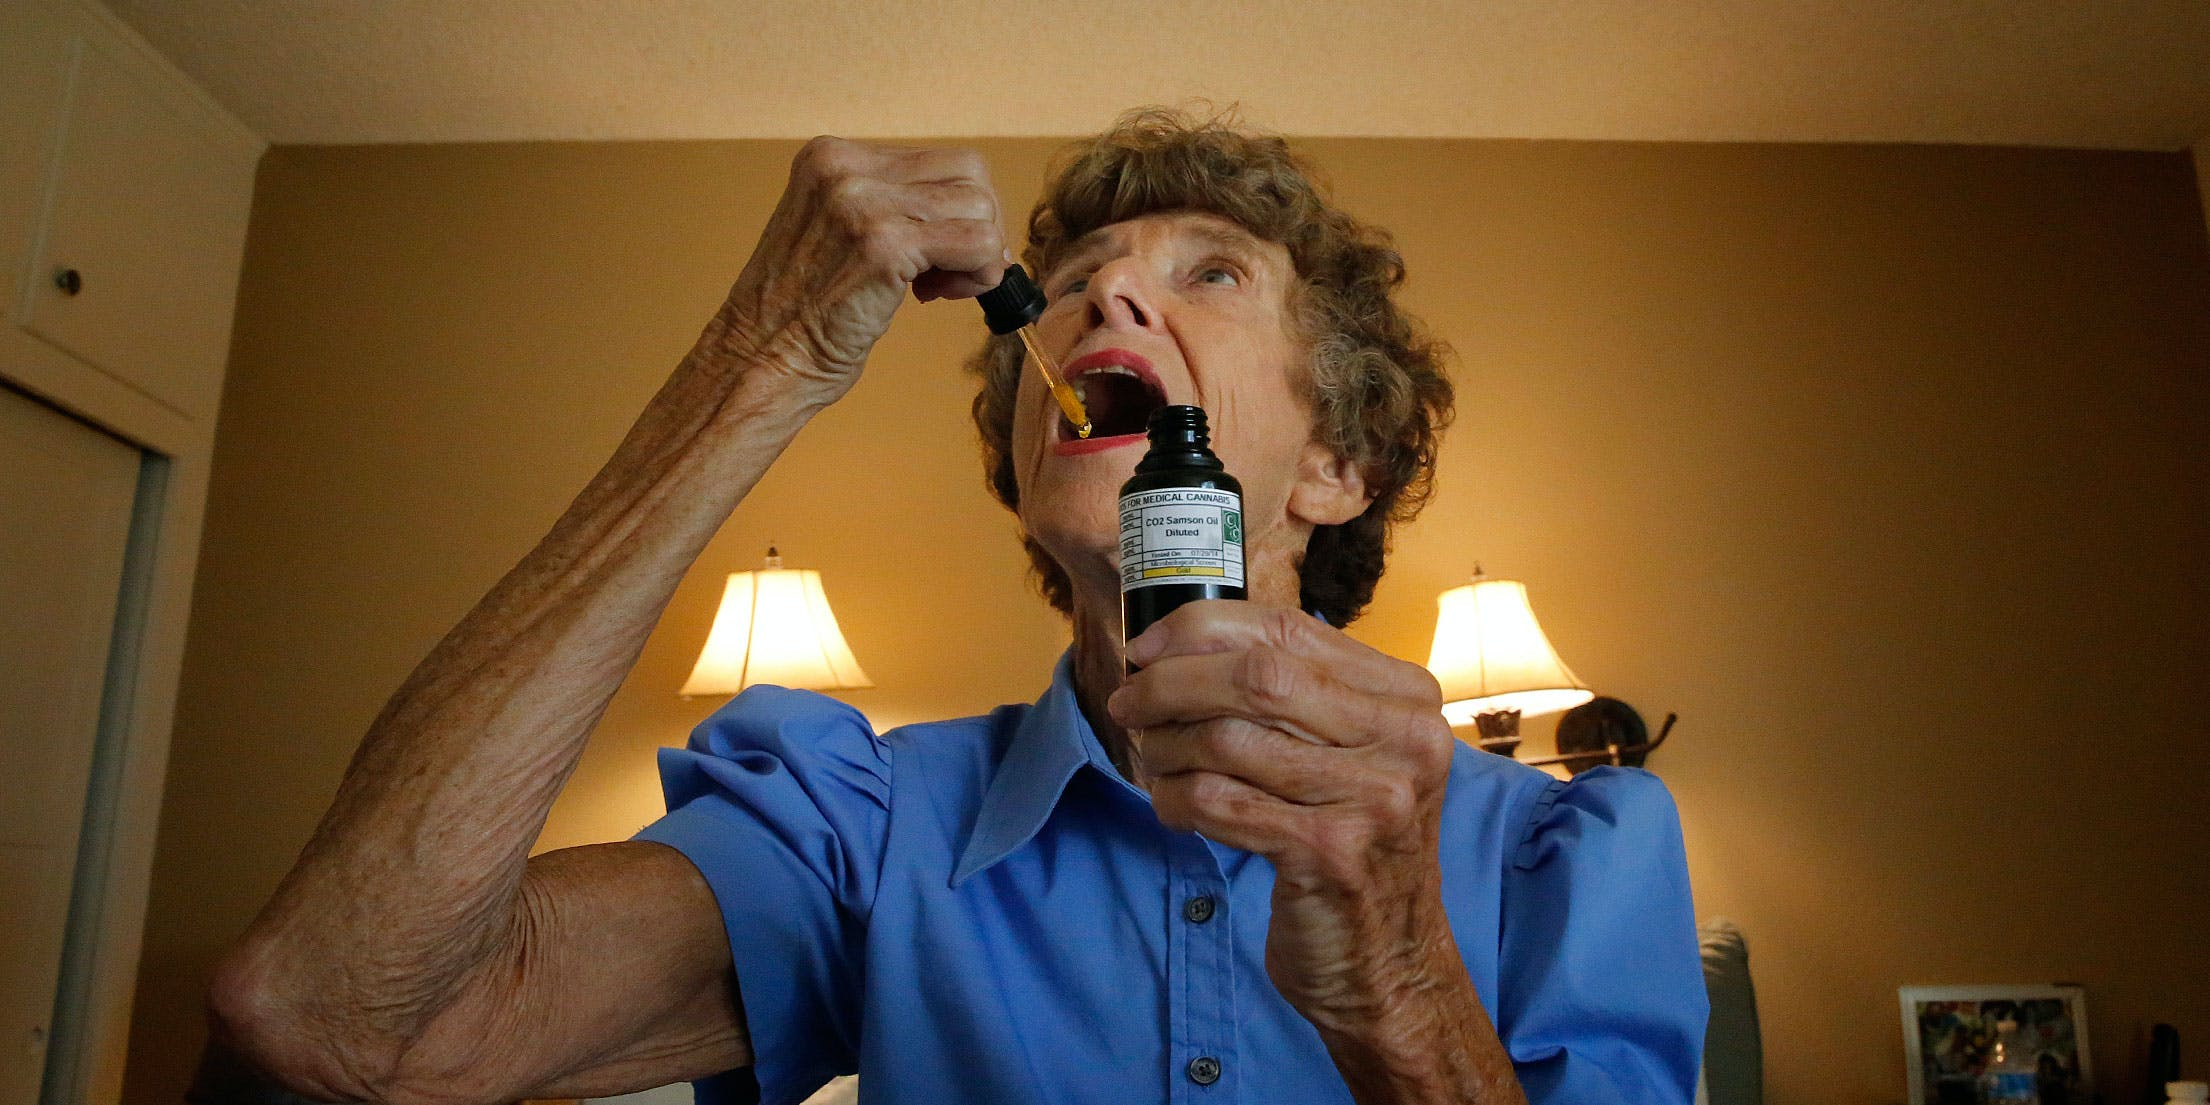 A senior takes a drop of medical marijuana under her tongue to help with pain relief. A recent Northwell survey found that 27 percent of seniors were able to forgo other forms of pain medication after using cannabis.